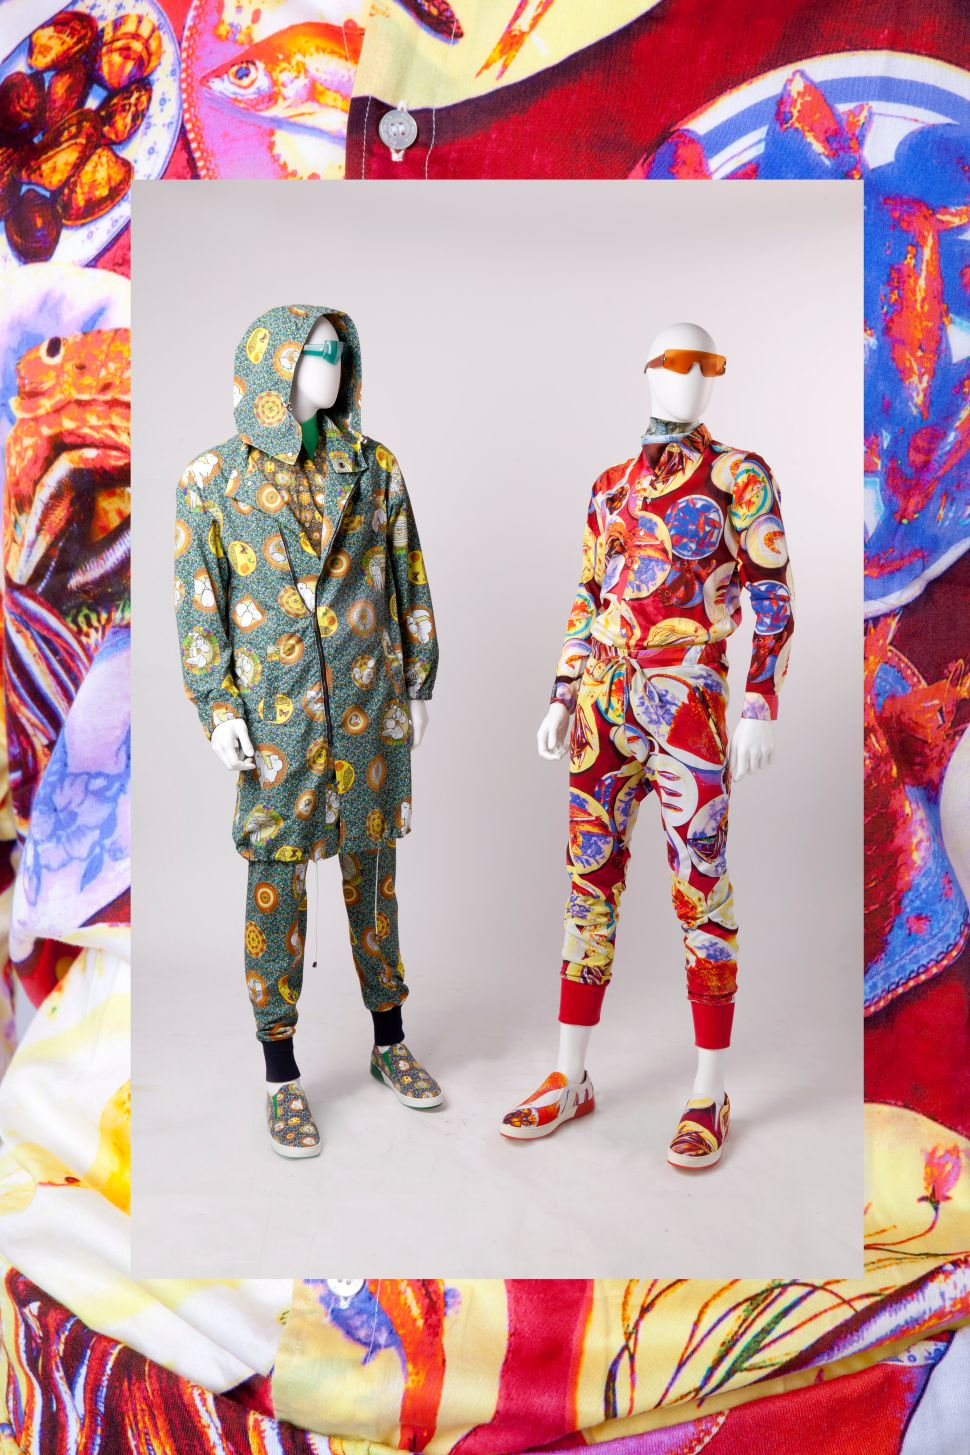 Italian Invasion: New Exhibition in Chelsea Market Explores Food and Fashion